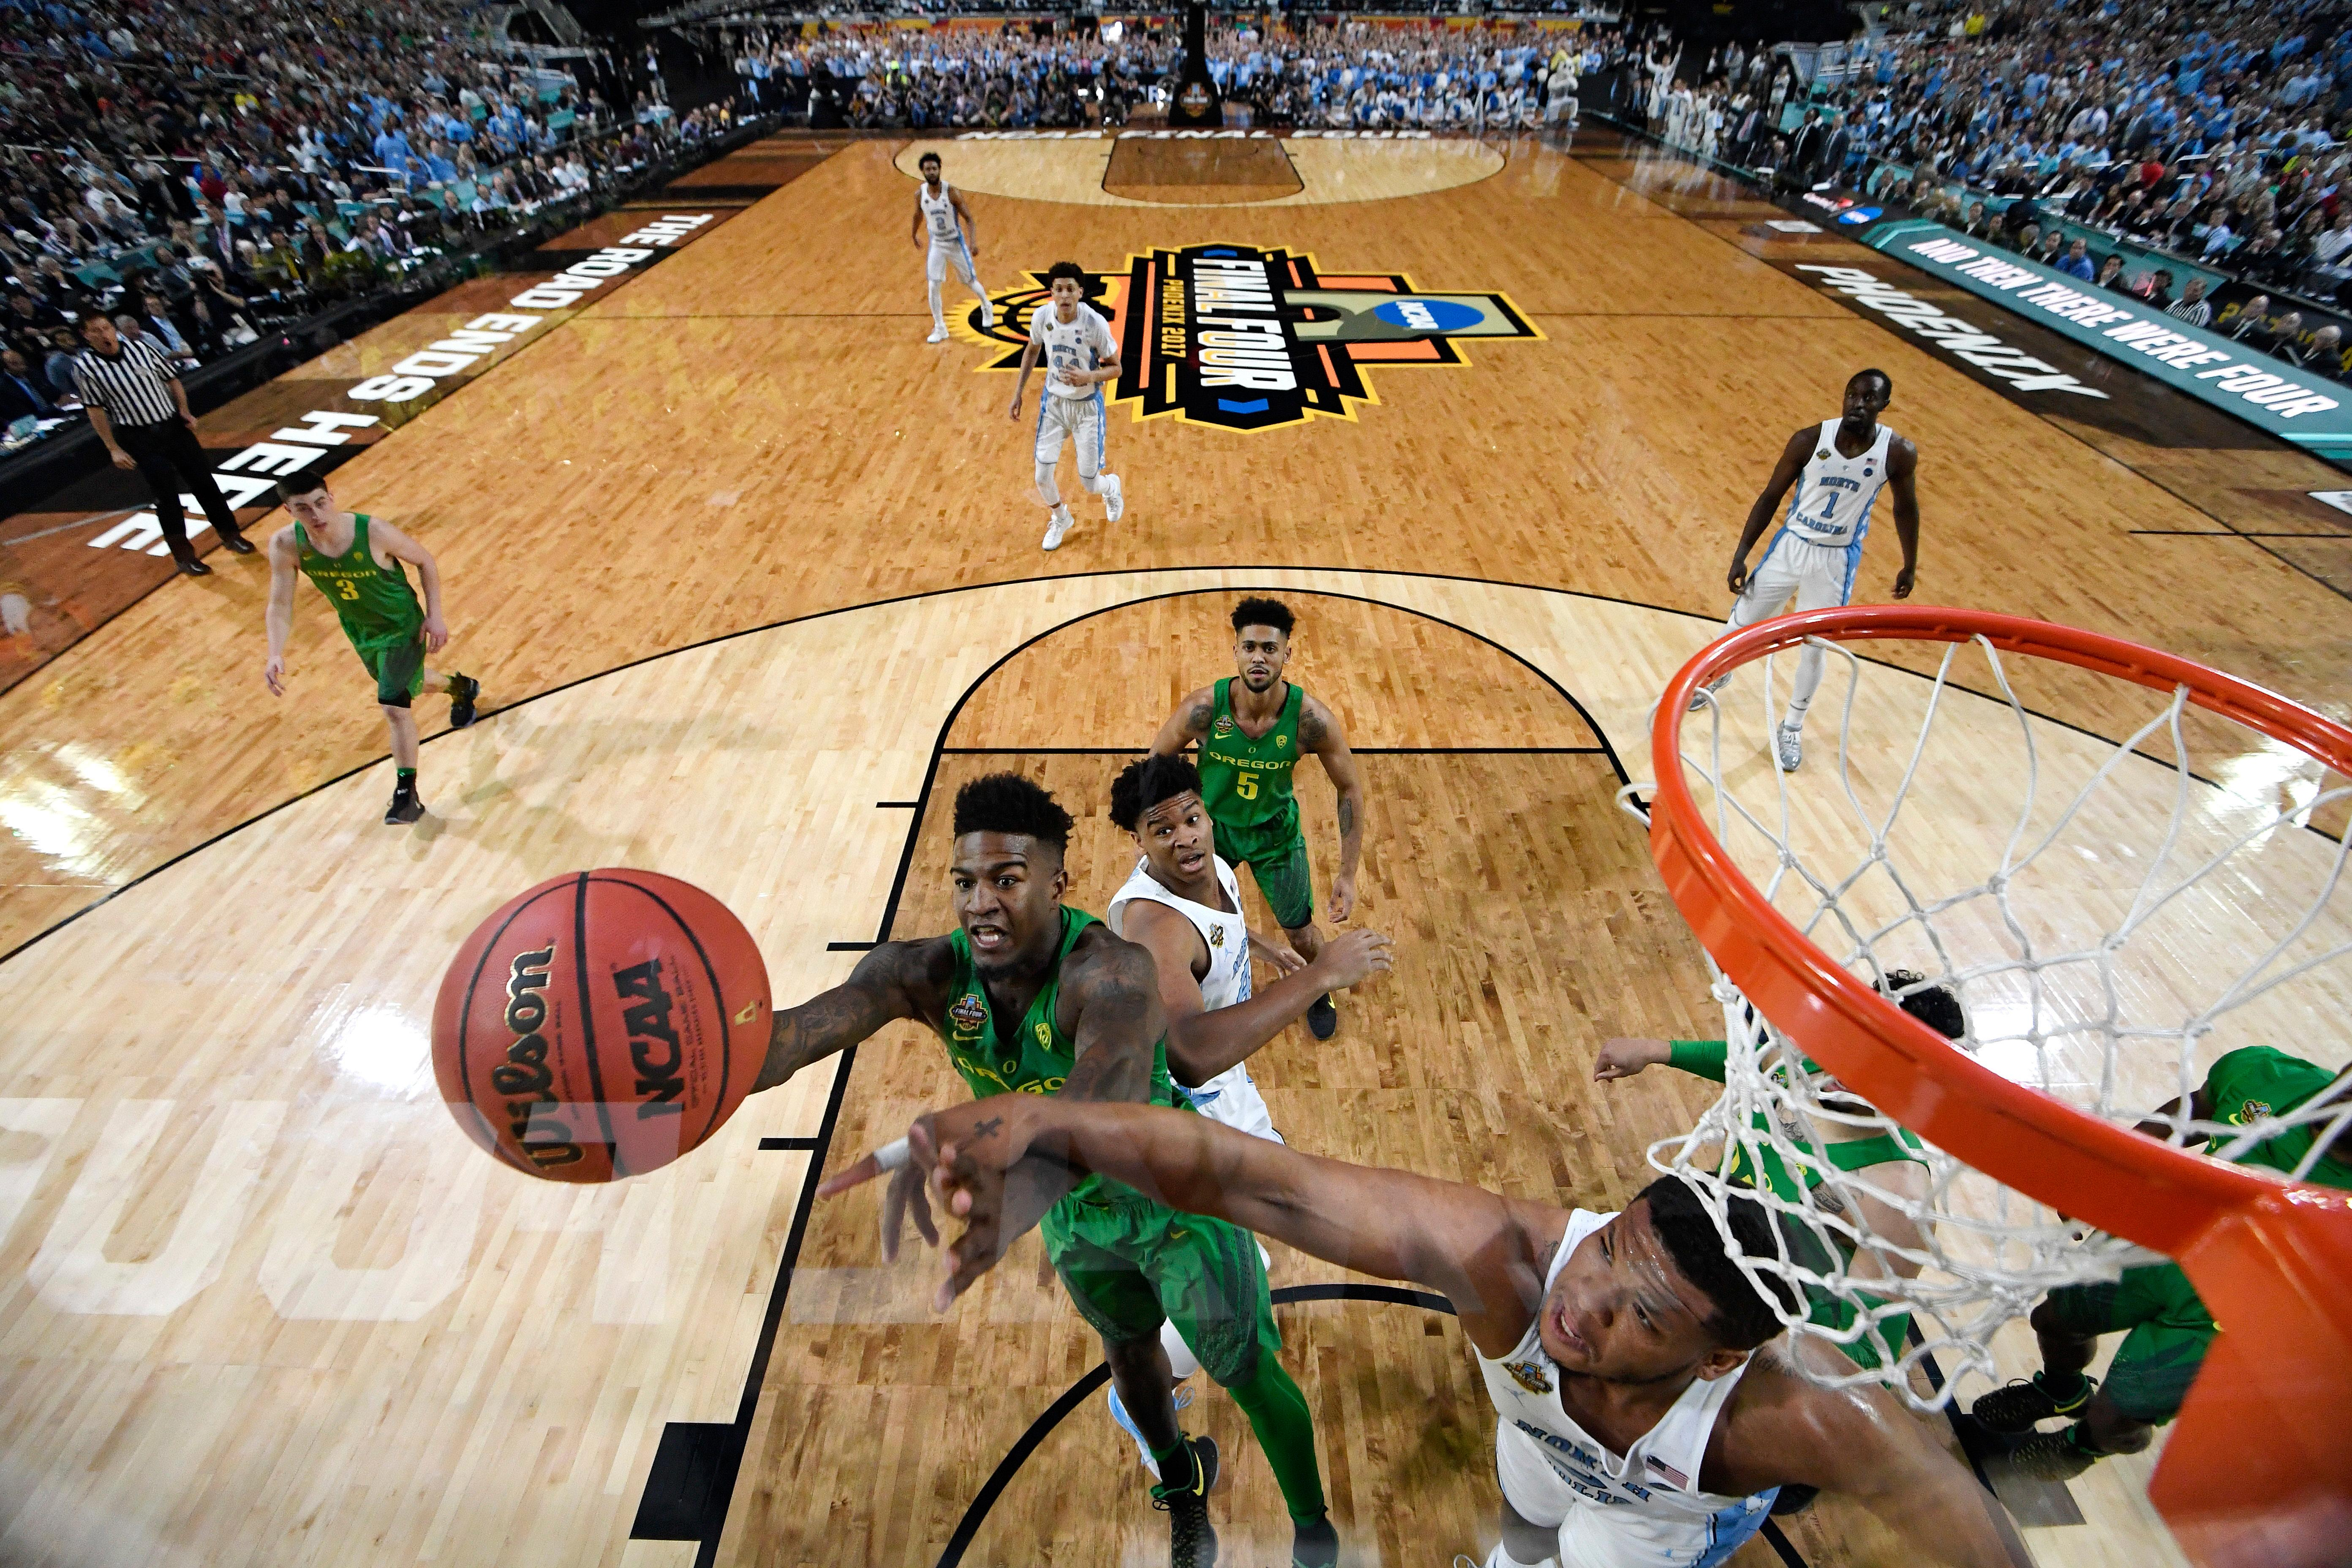 North Carolina's Kennedy Meeks, right, blocks a shot by Oregon's Jordan Bell during the first half in the semifinals of the Final Four NCAA college basketball tournament, Saturday, April 1, 2017, in Glendale, Ariz. (AP Photo/Chris Steppig, Pool)